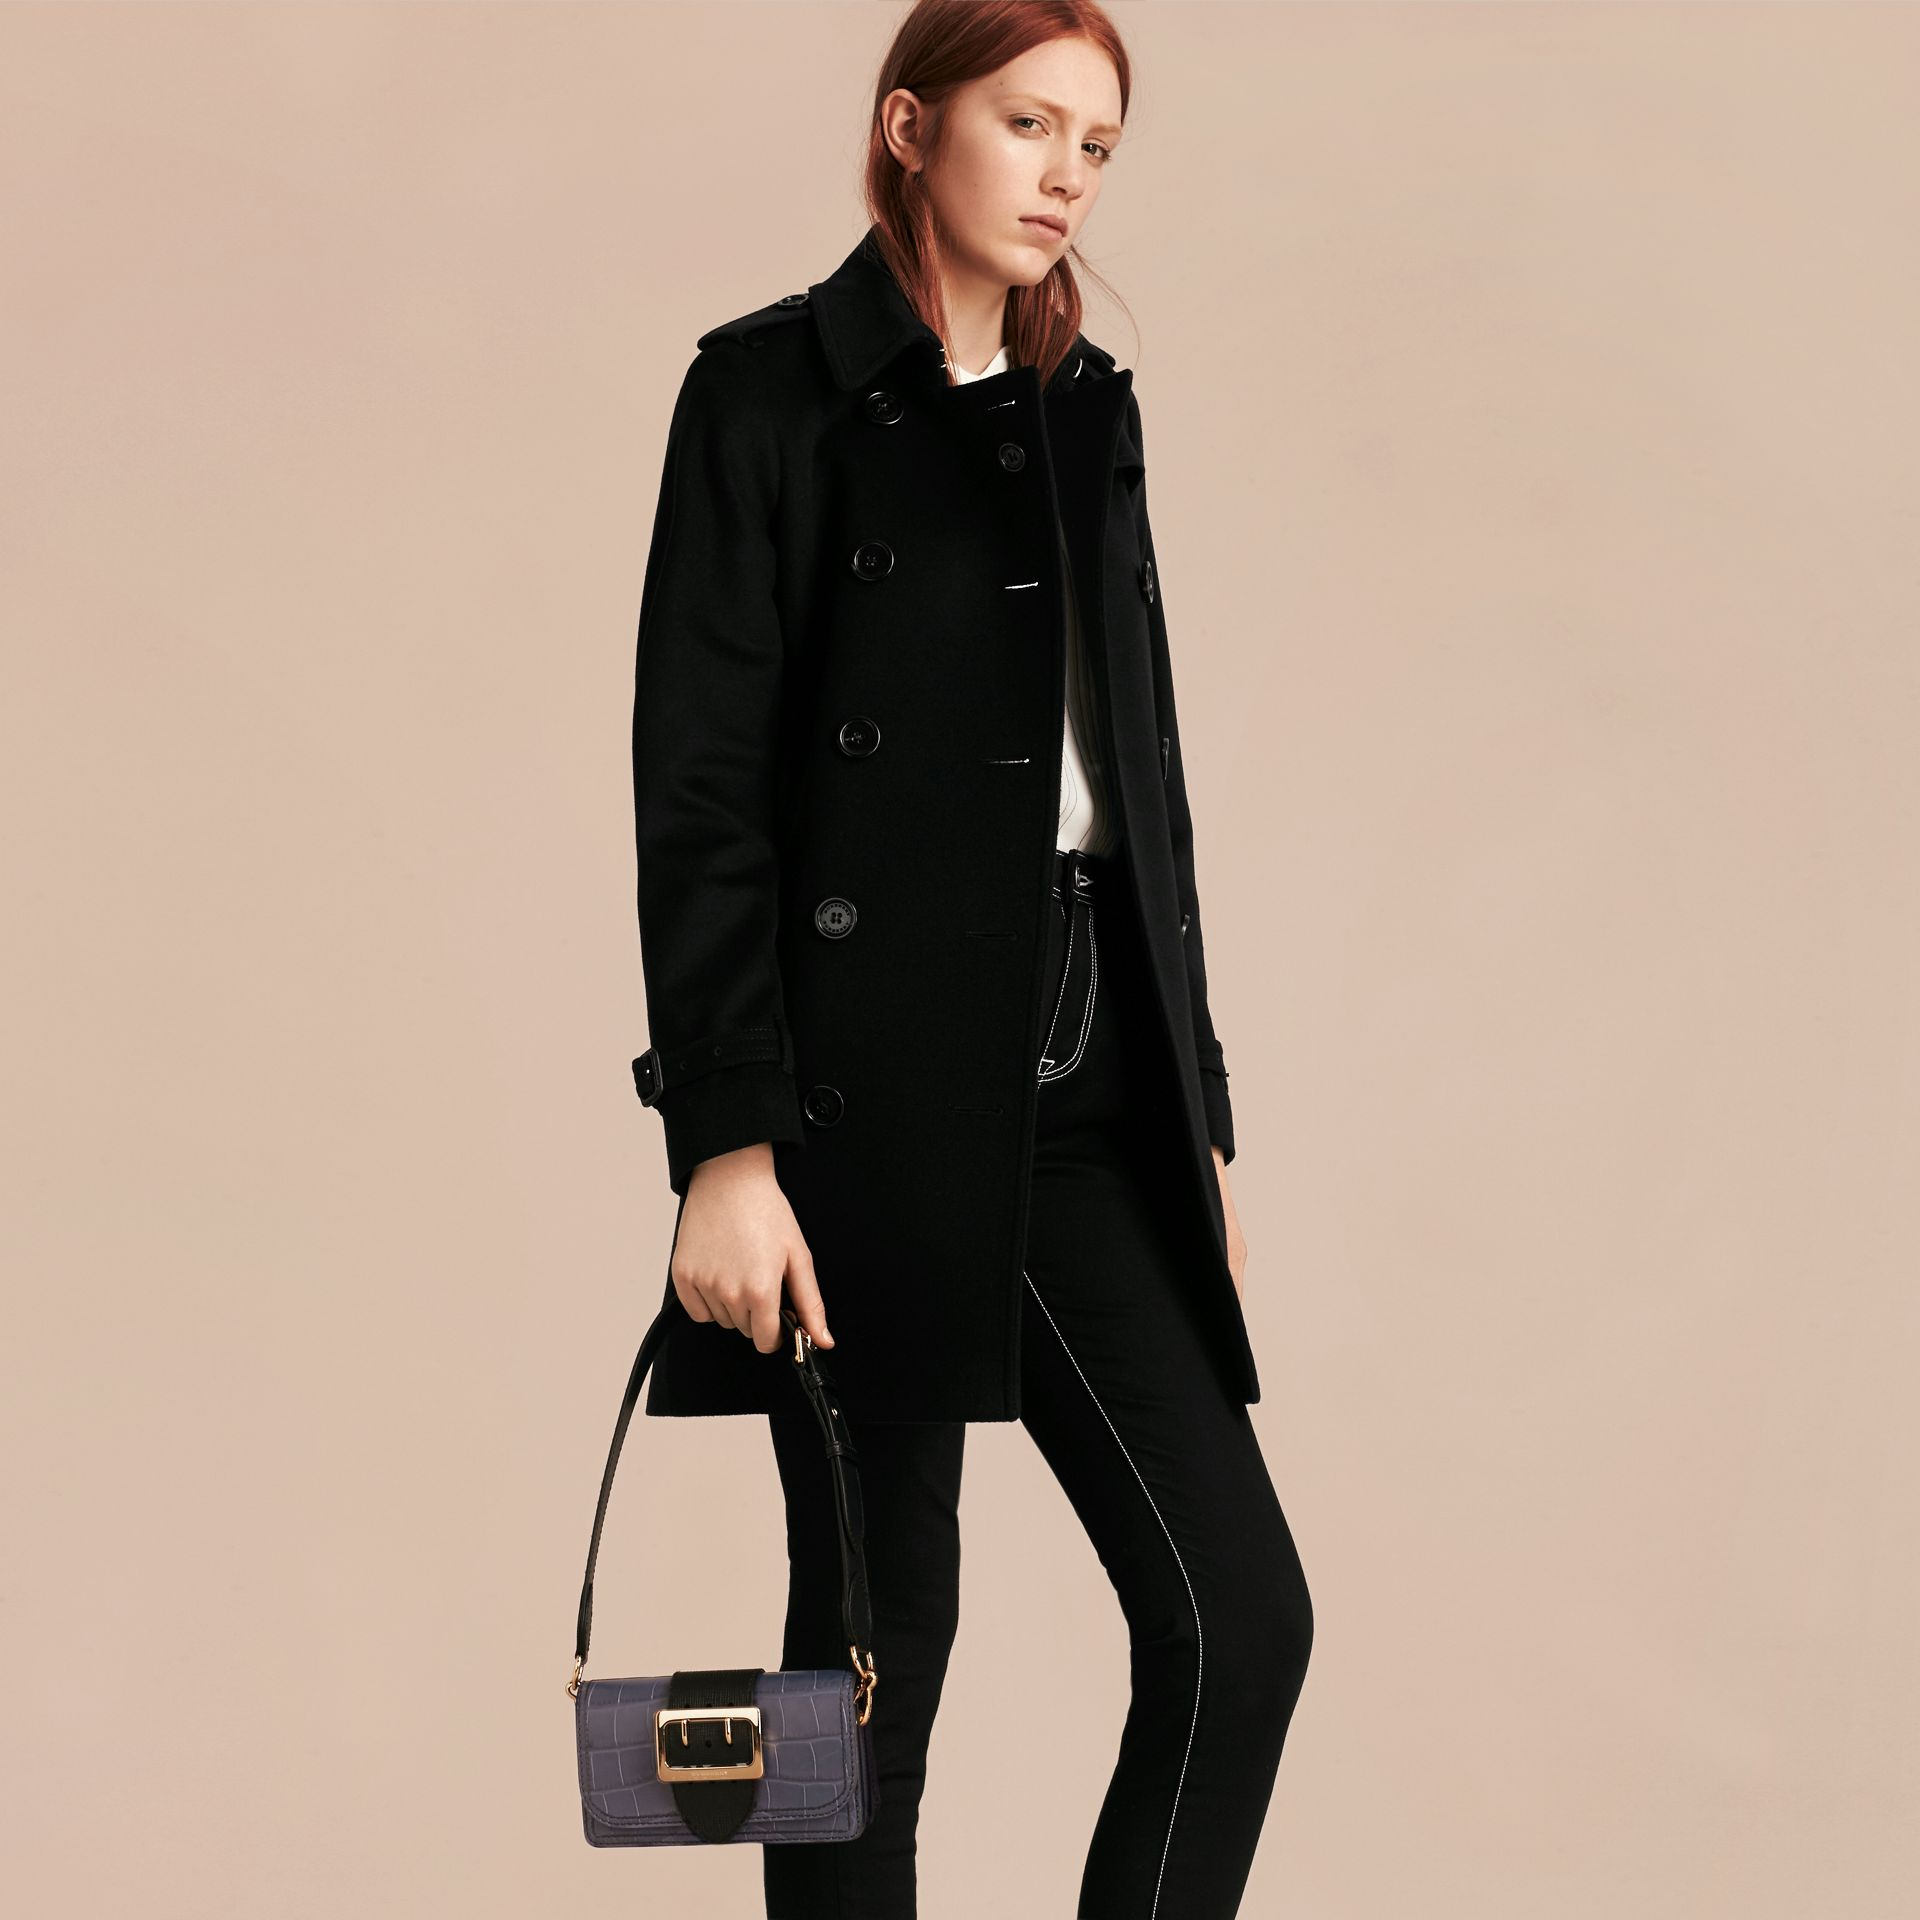 Petit sac The Buckle en alligator et cuir (Marine/noir) - Femme | Burberry - photo de la galerie 3